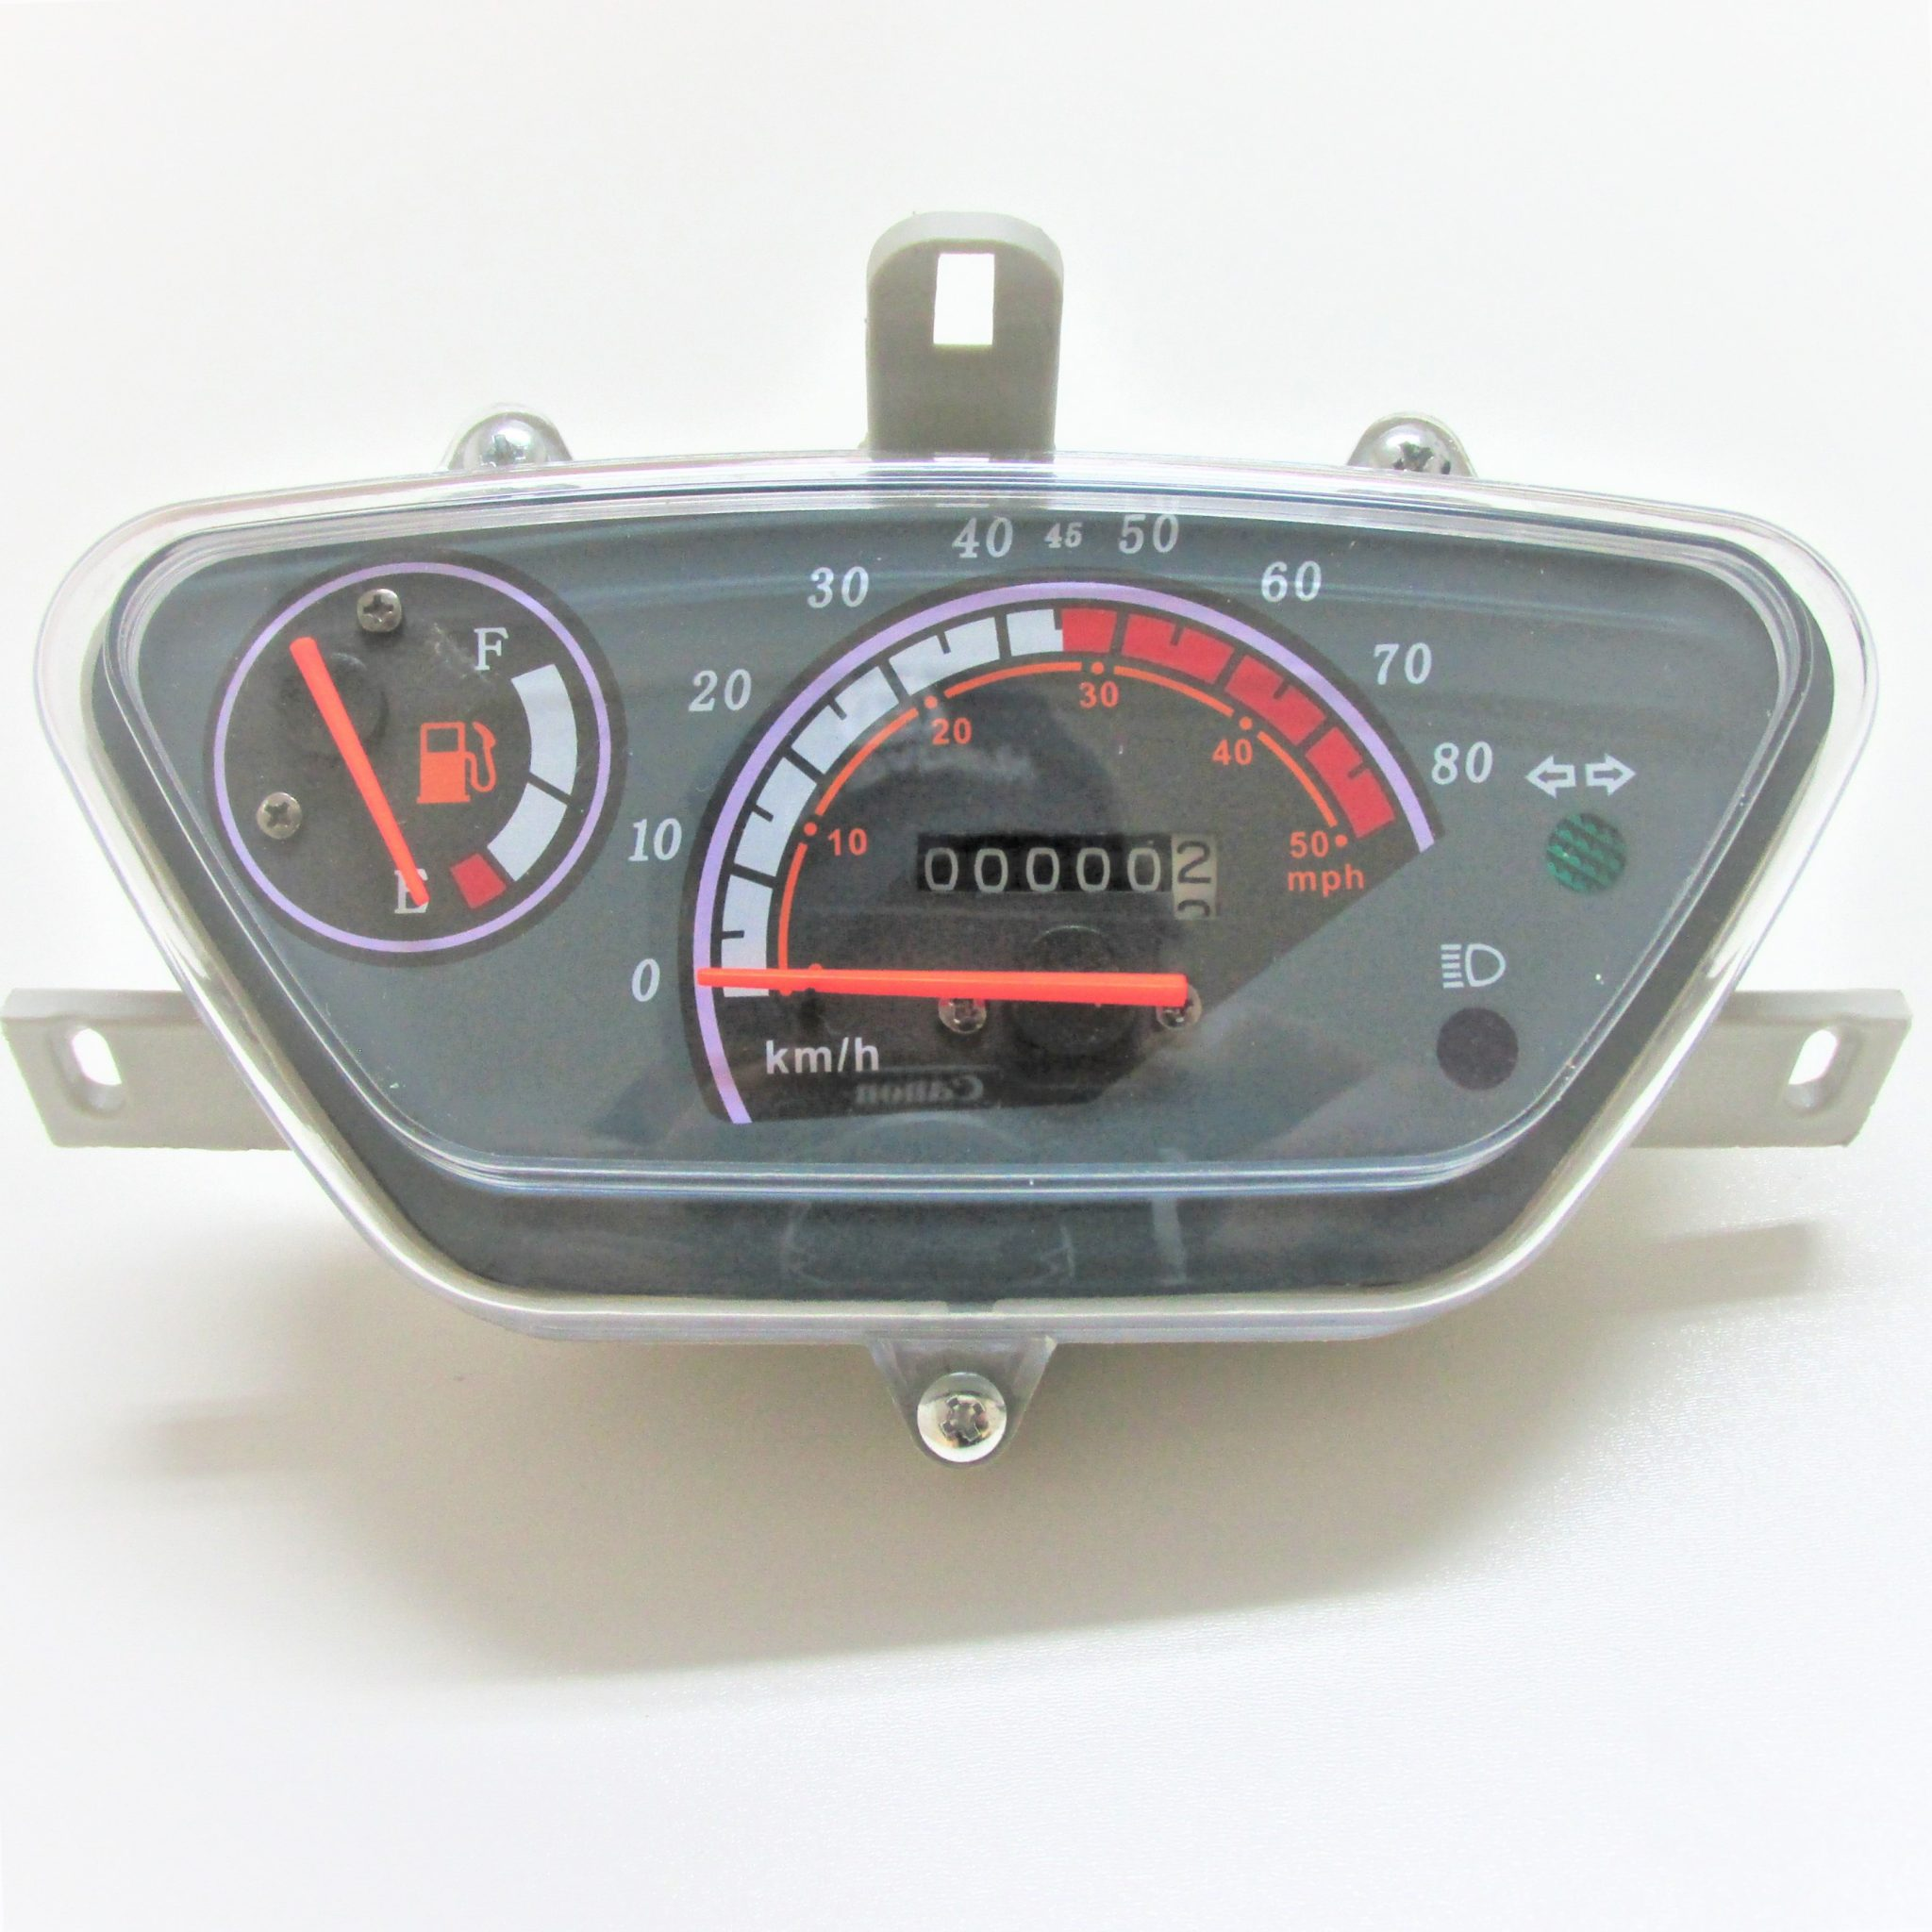 49cc 139 Qmb Gy6 Engine Parts Diagram 50cc Instrument Gauge For Scooter Moped Speedometer